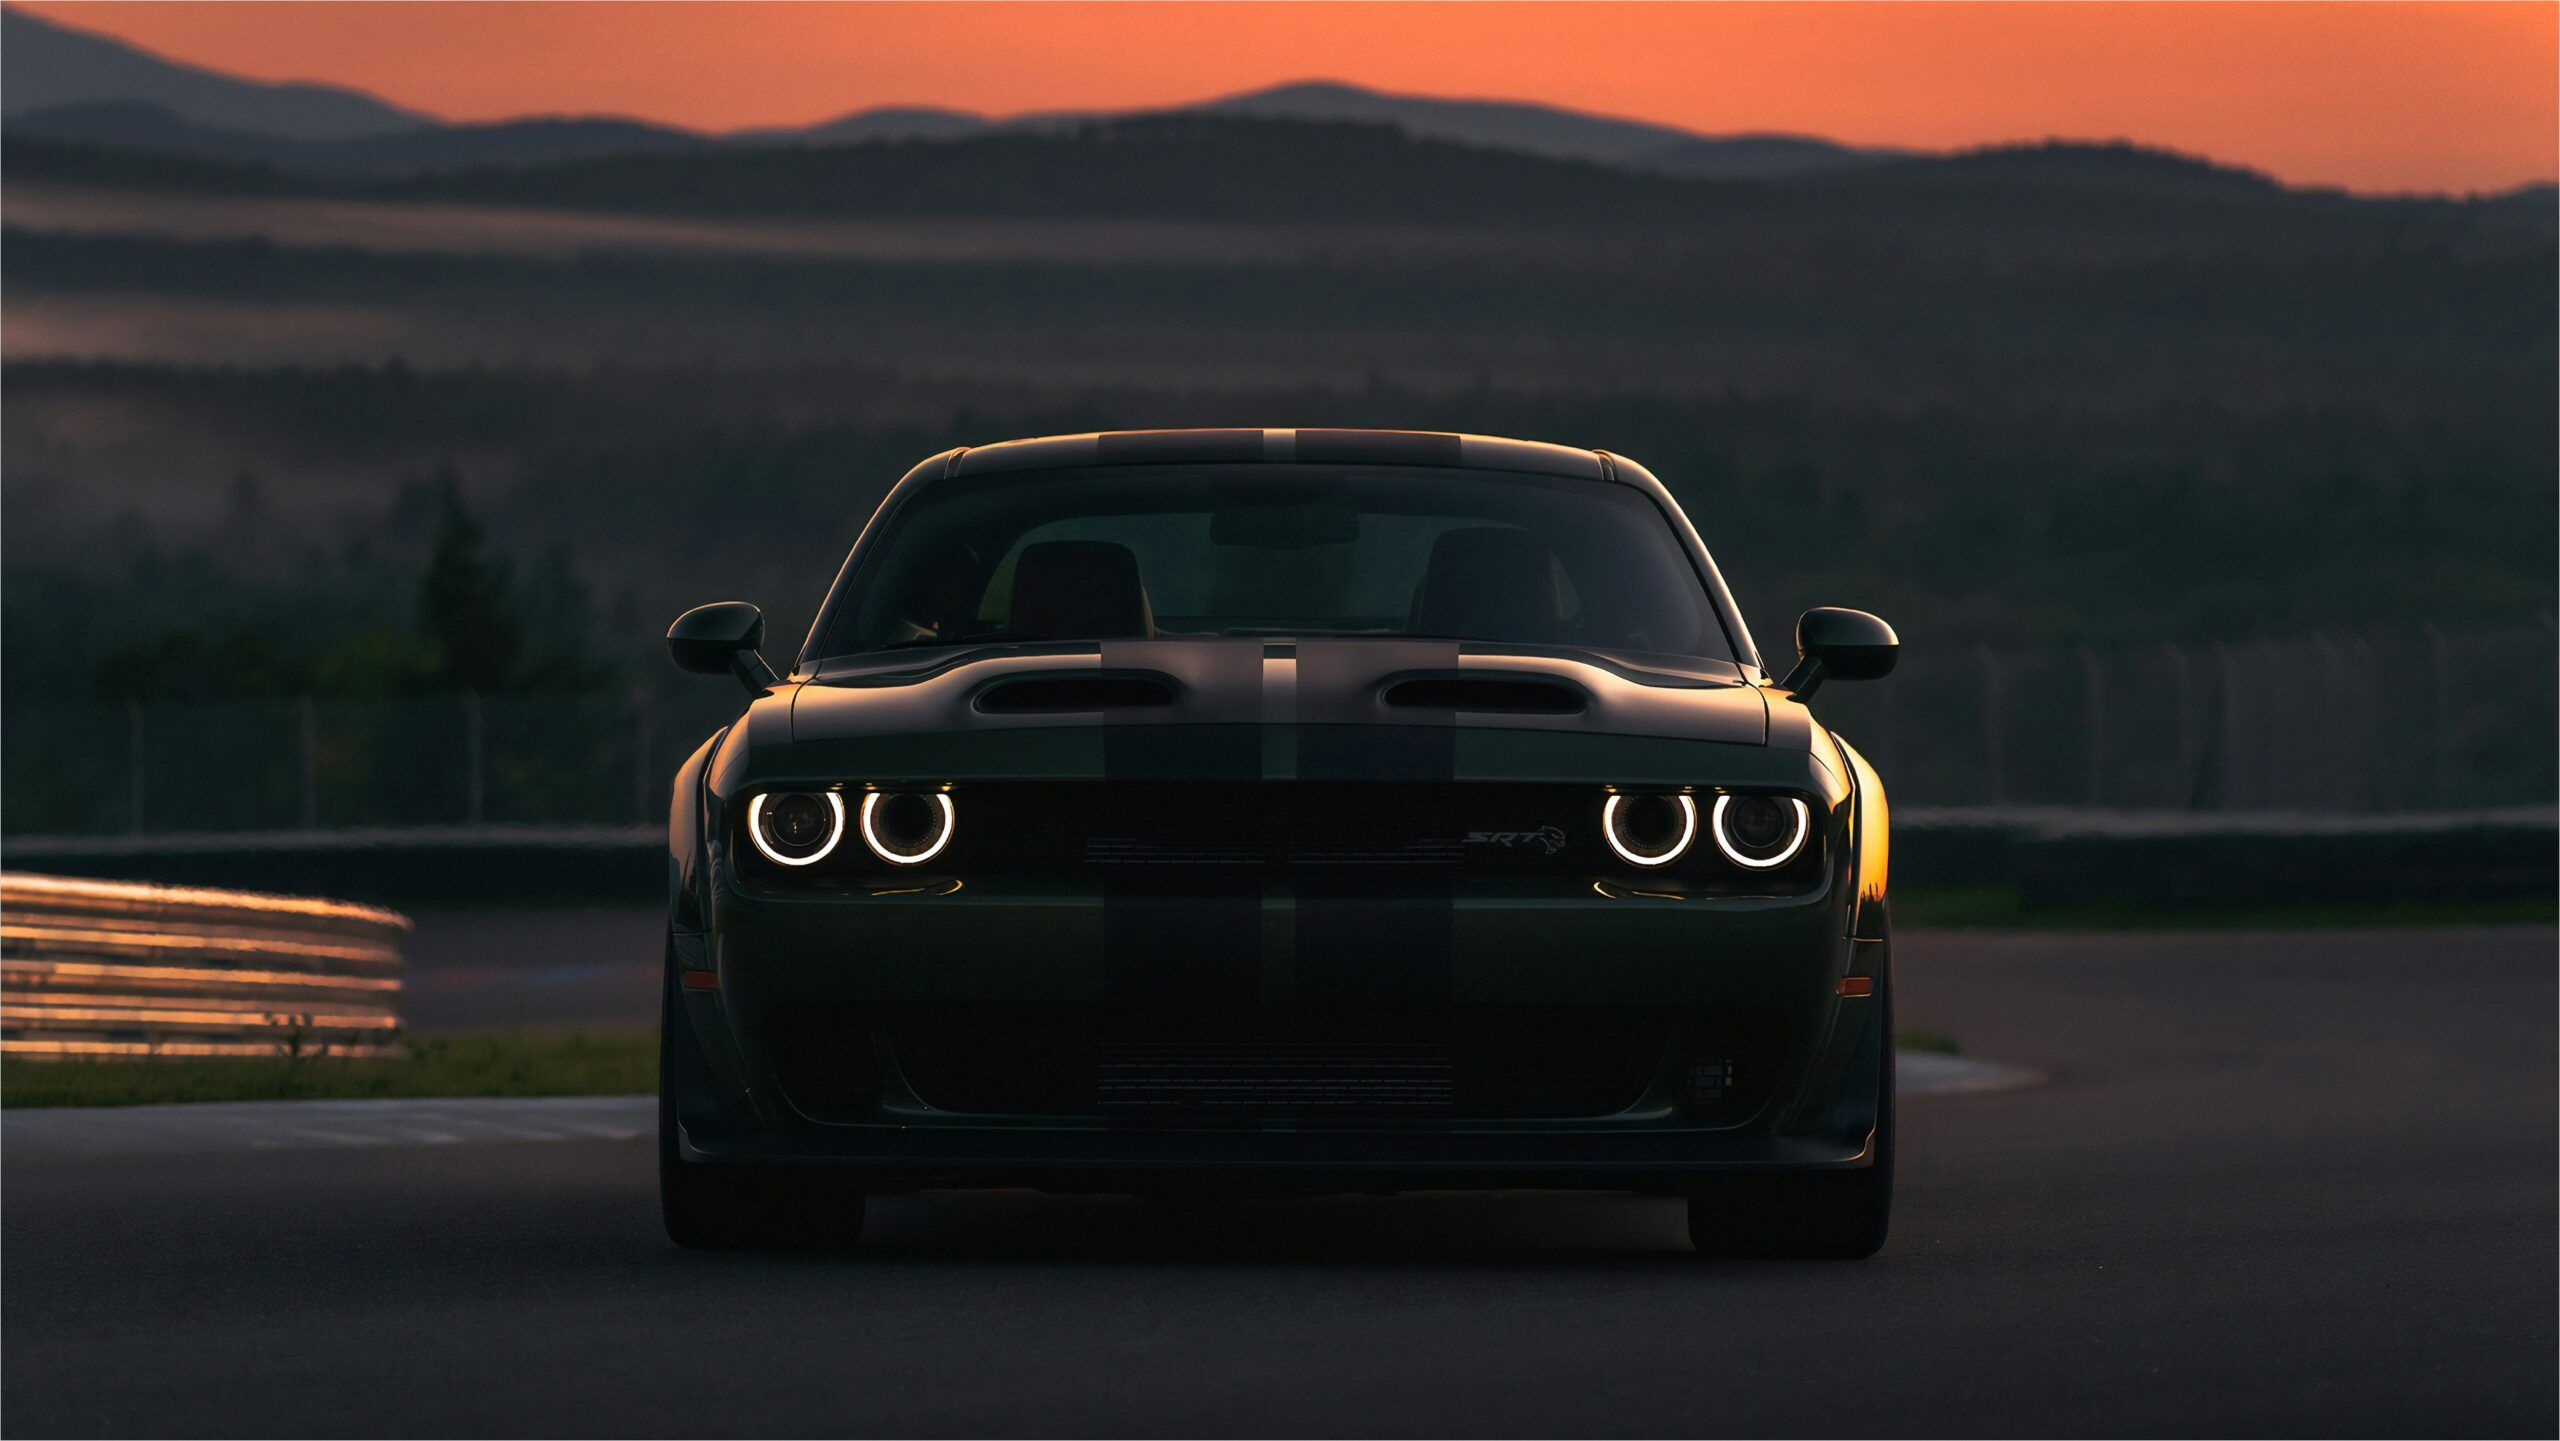 2019 Charger Hellcat 4k Wallpaper In 2020 Dodge Challenger Challenger Srt Hellcat Dodge Challenger Srt Hellcat